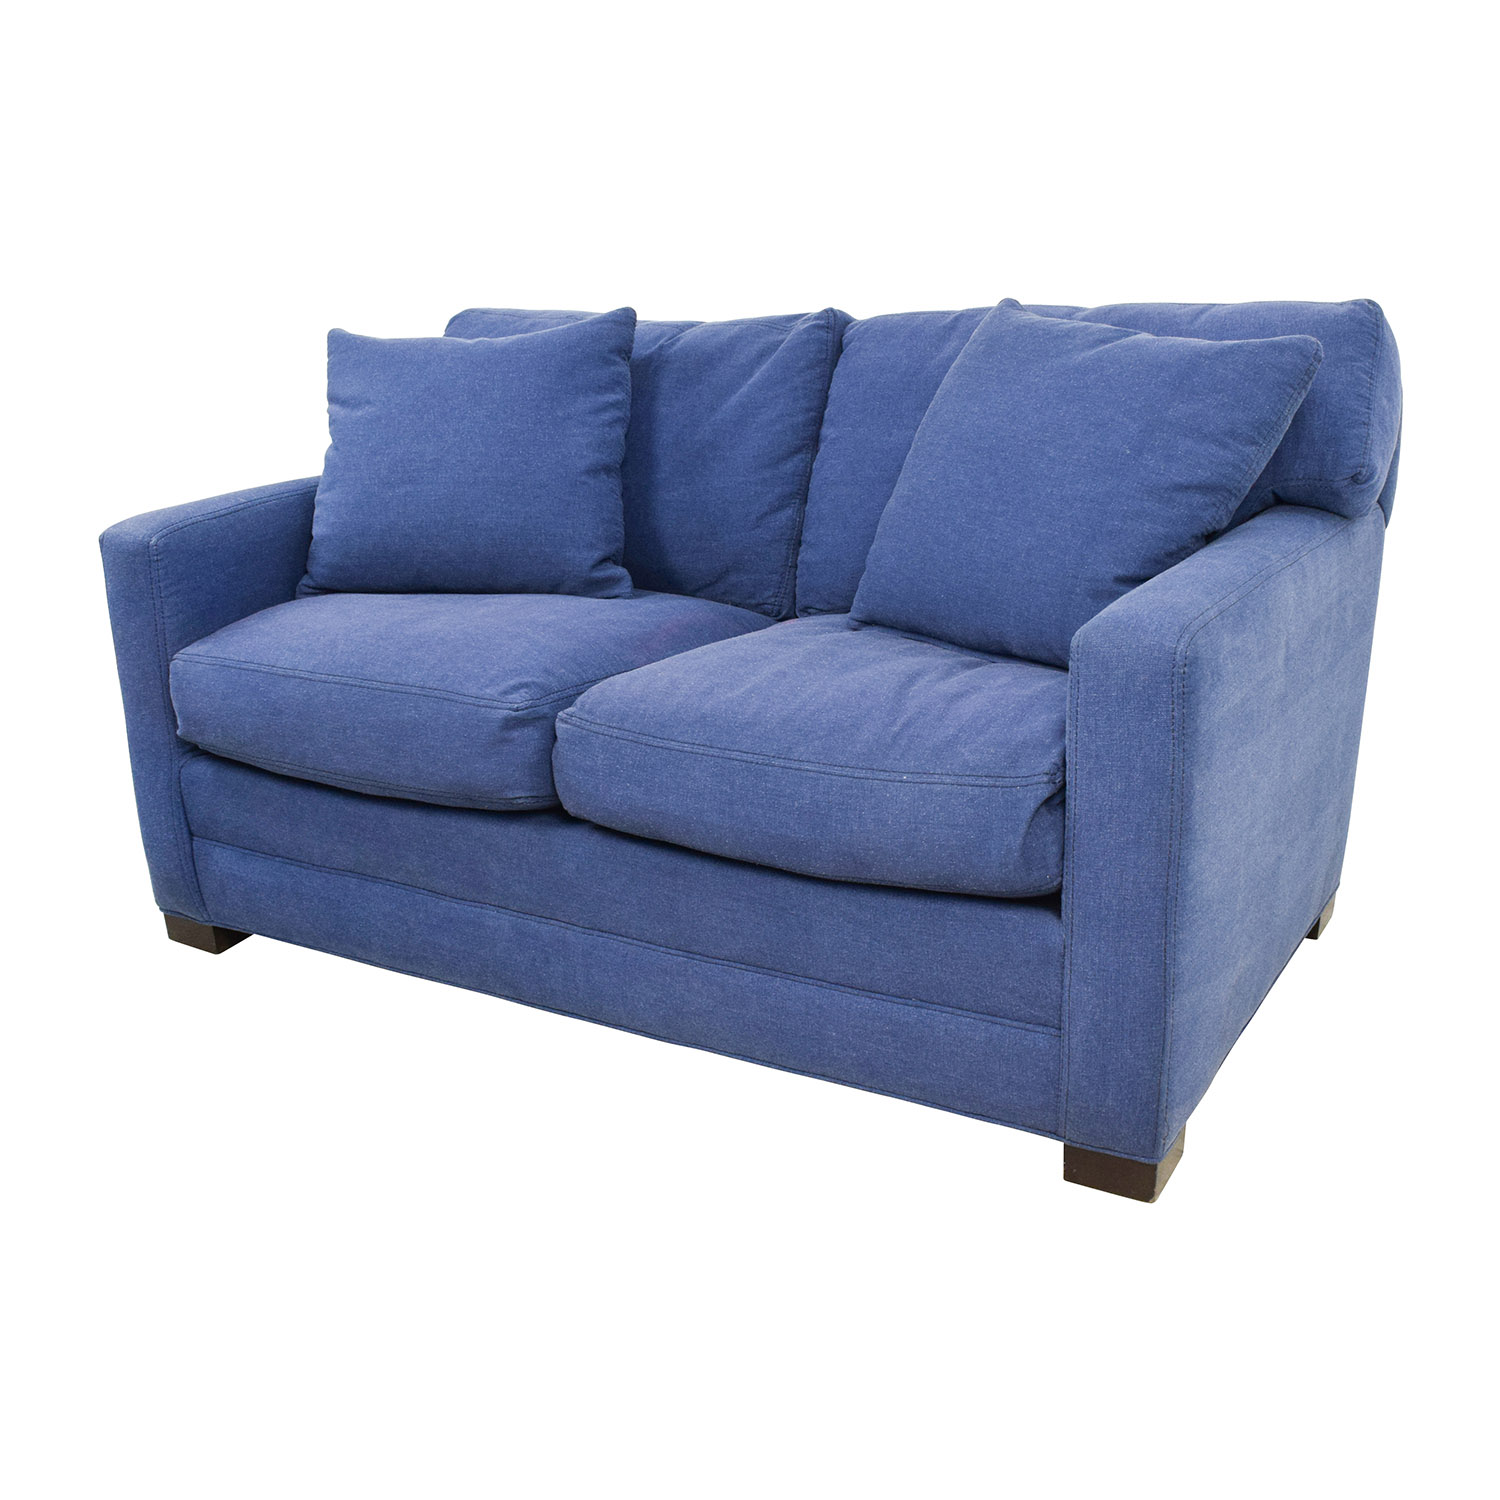 79 off lee industries lee industries denim blue loveseat sofas Sofa loveseat